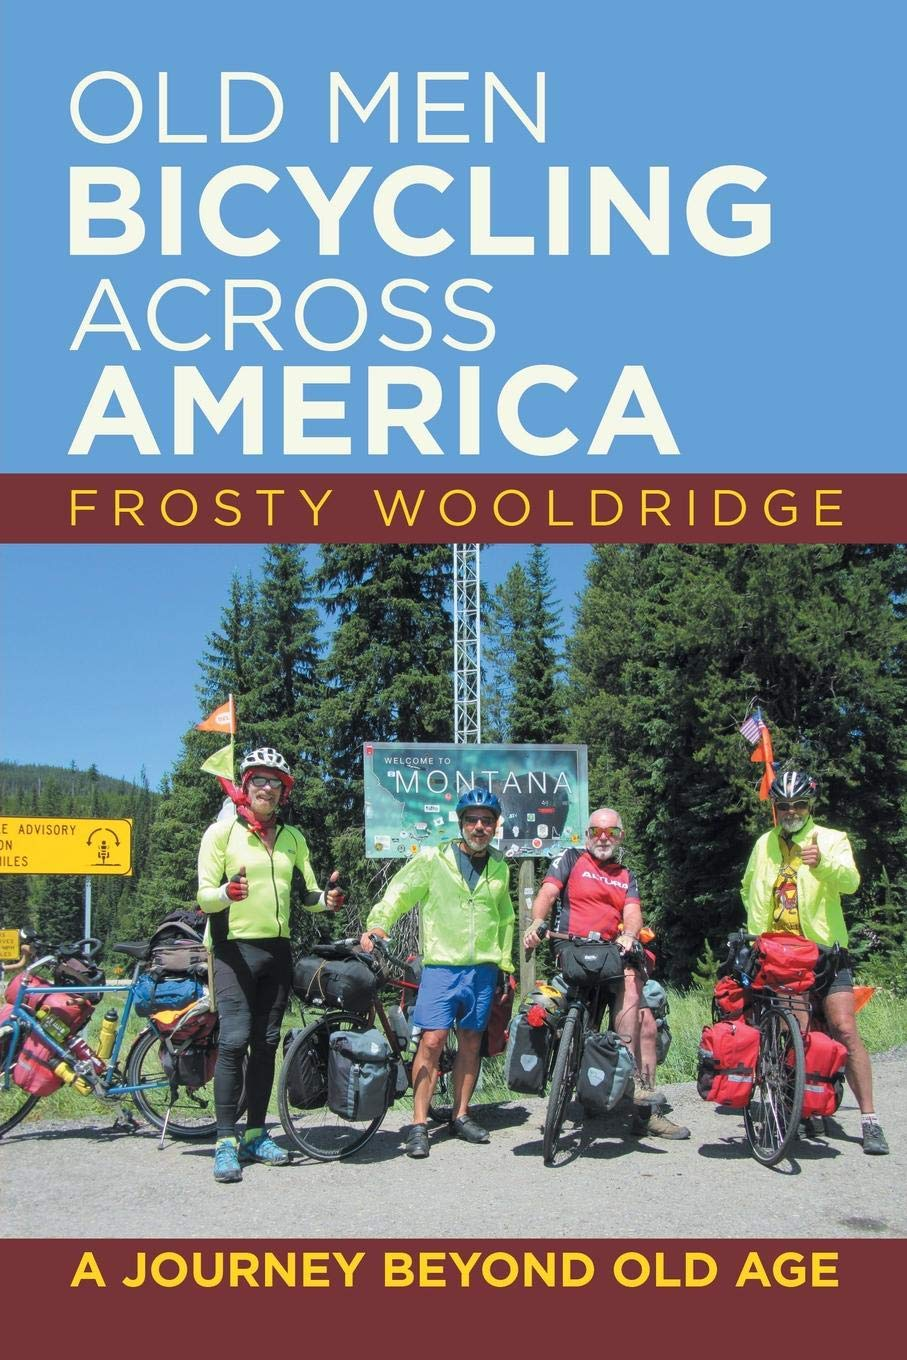 The Andrew Carrington Hitchcock Show (910) Frosty Wooldridge – Old Men Bicycling Across America: A Journey Beyond Old Age